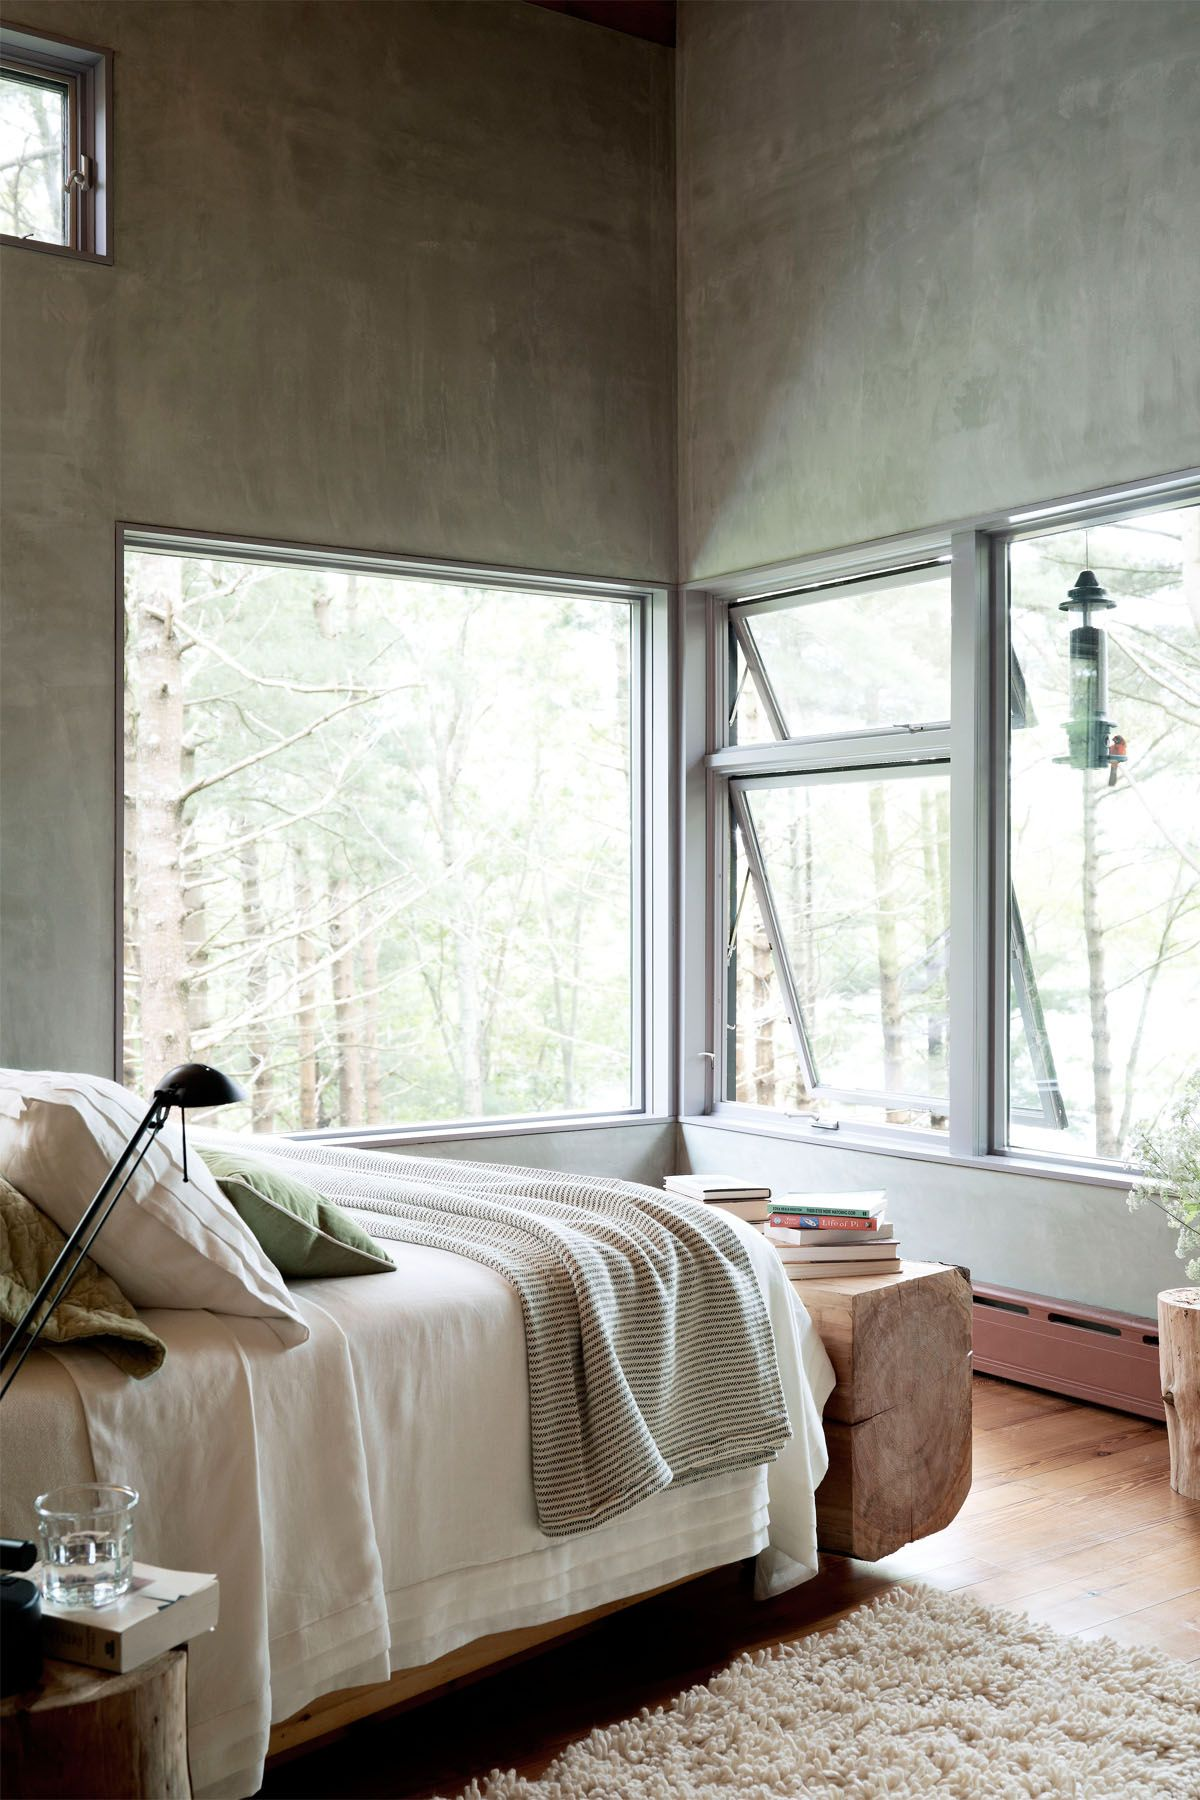 Bedroom Colors Grey 10 gray bedroom decorating ideas - grey paint colors for bedrooms